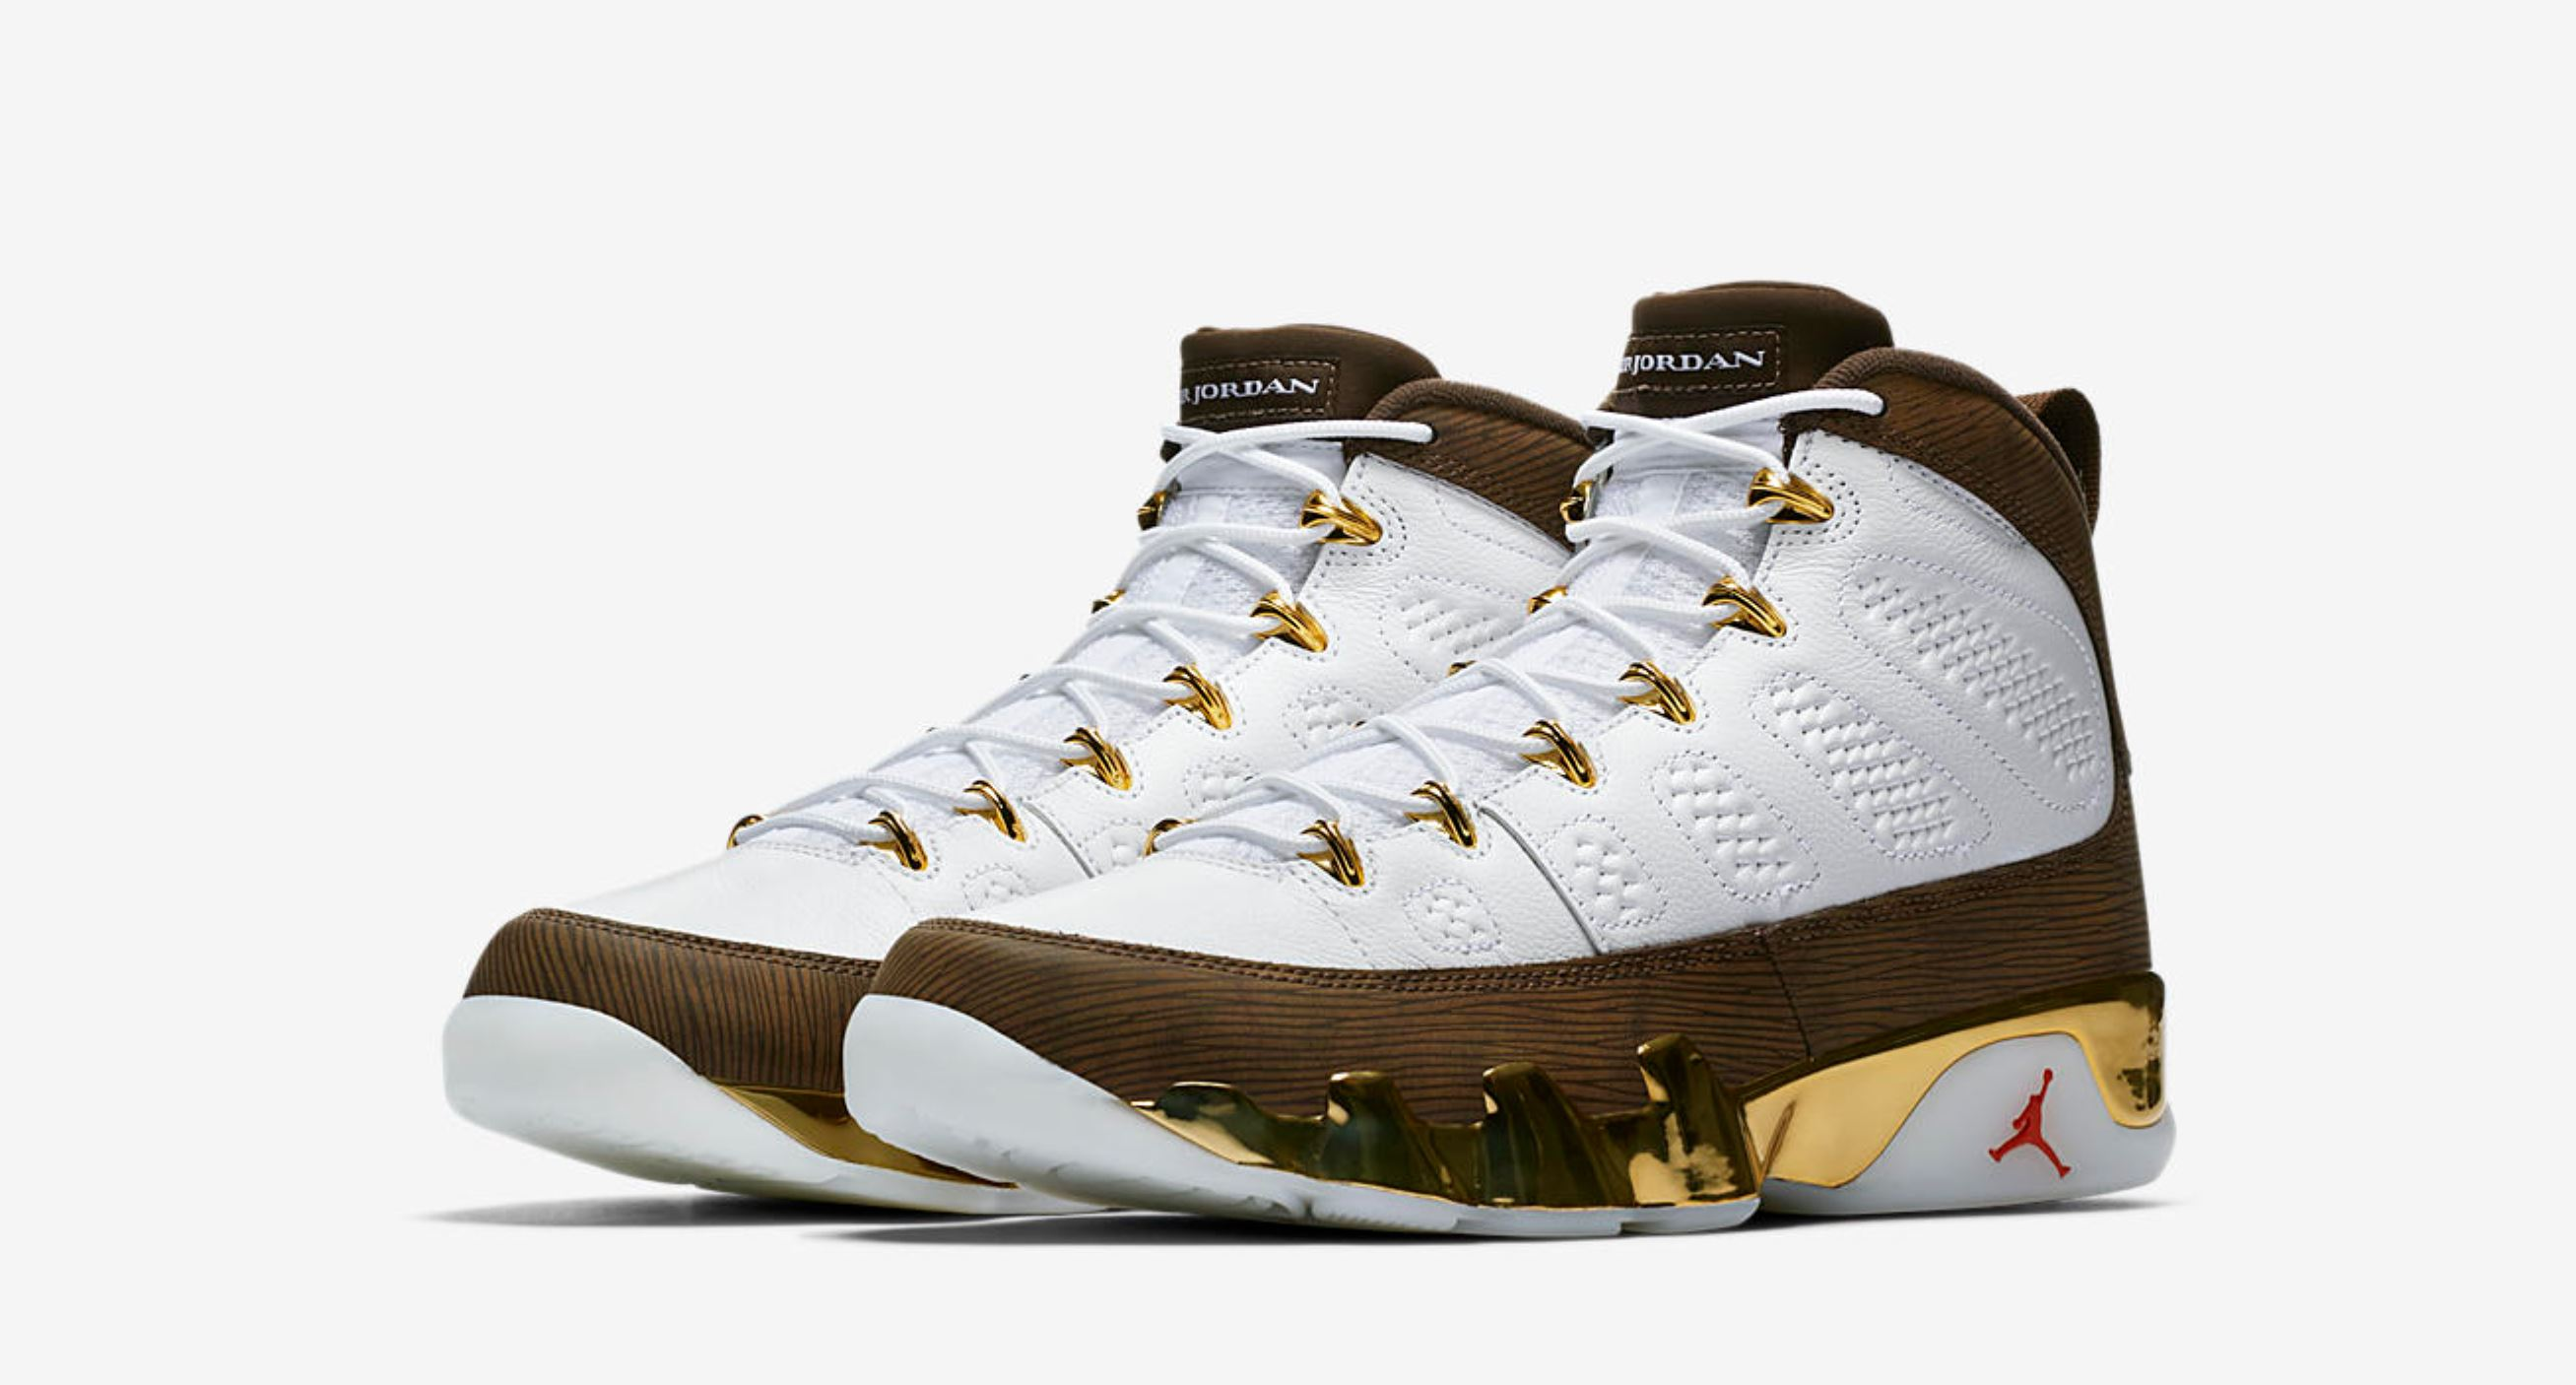 18a94a35047 ... hot coupon code e0dc7 5f0bb air jordan 9 mop melo release date 4 .  7c704 f6c29